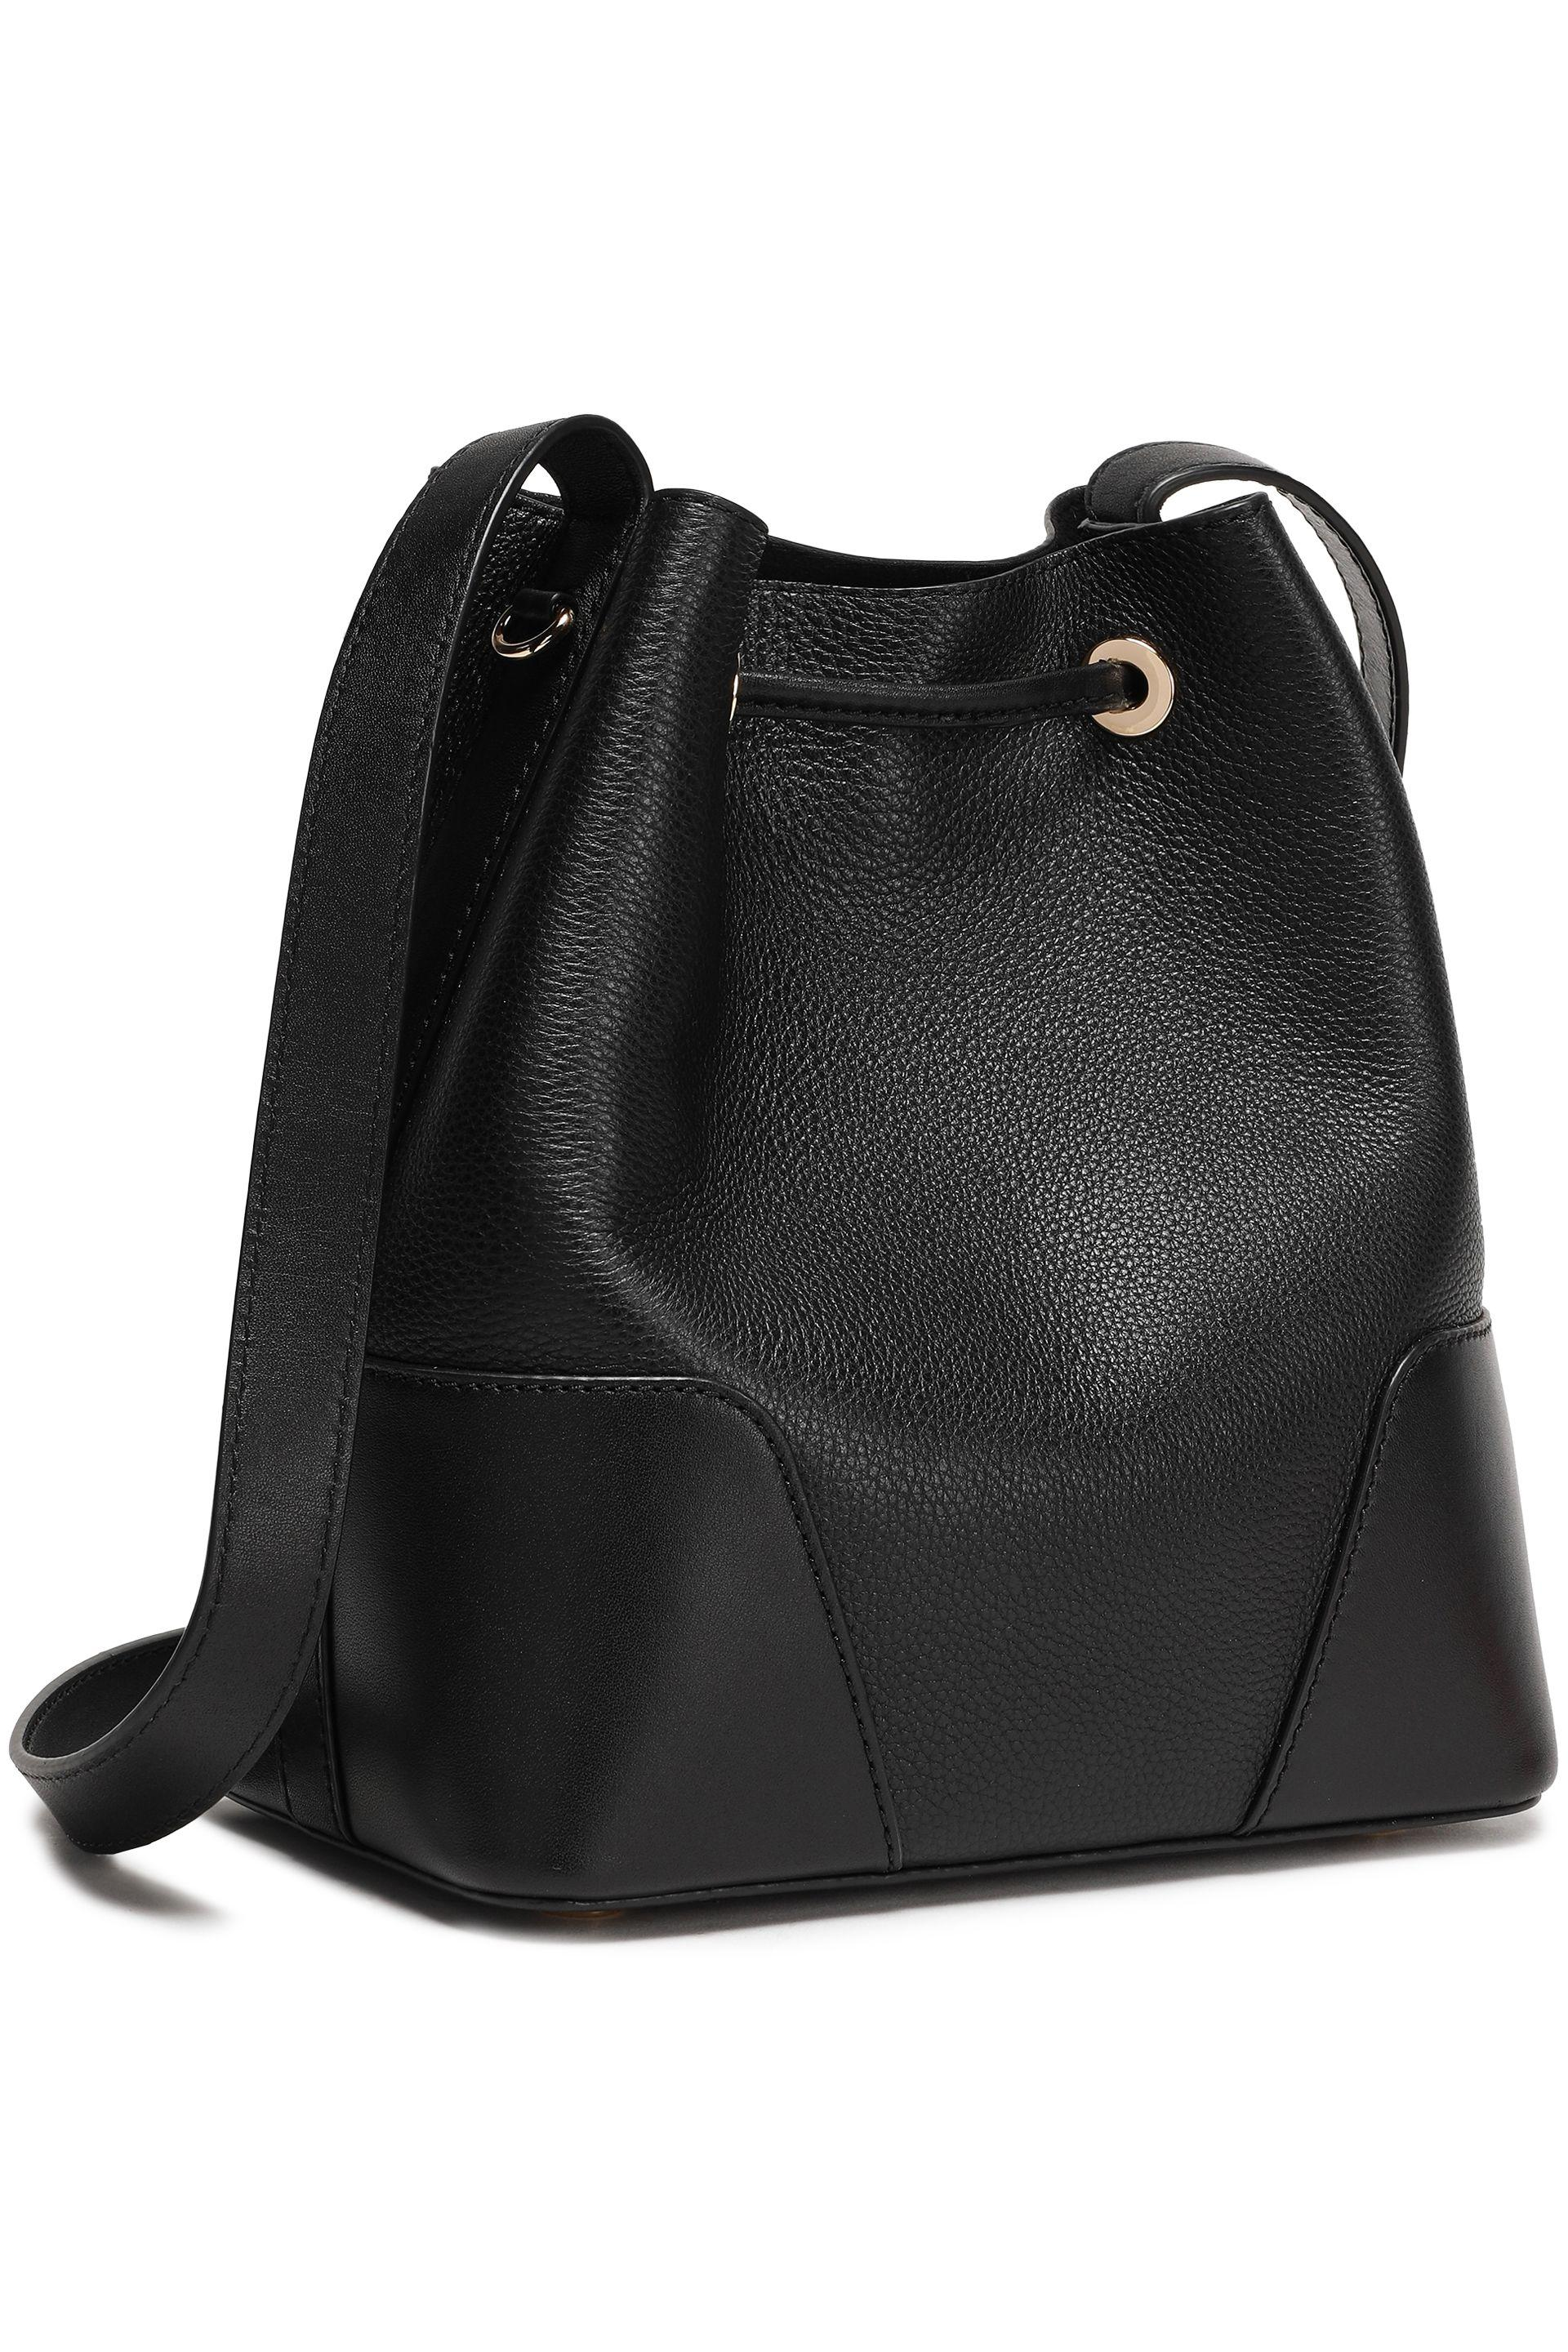 645ac0ad7419d MICHAEL Michael Kors Woman Cary Pebbled-leather Bucket Bag Black in ...